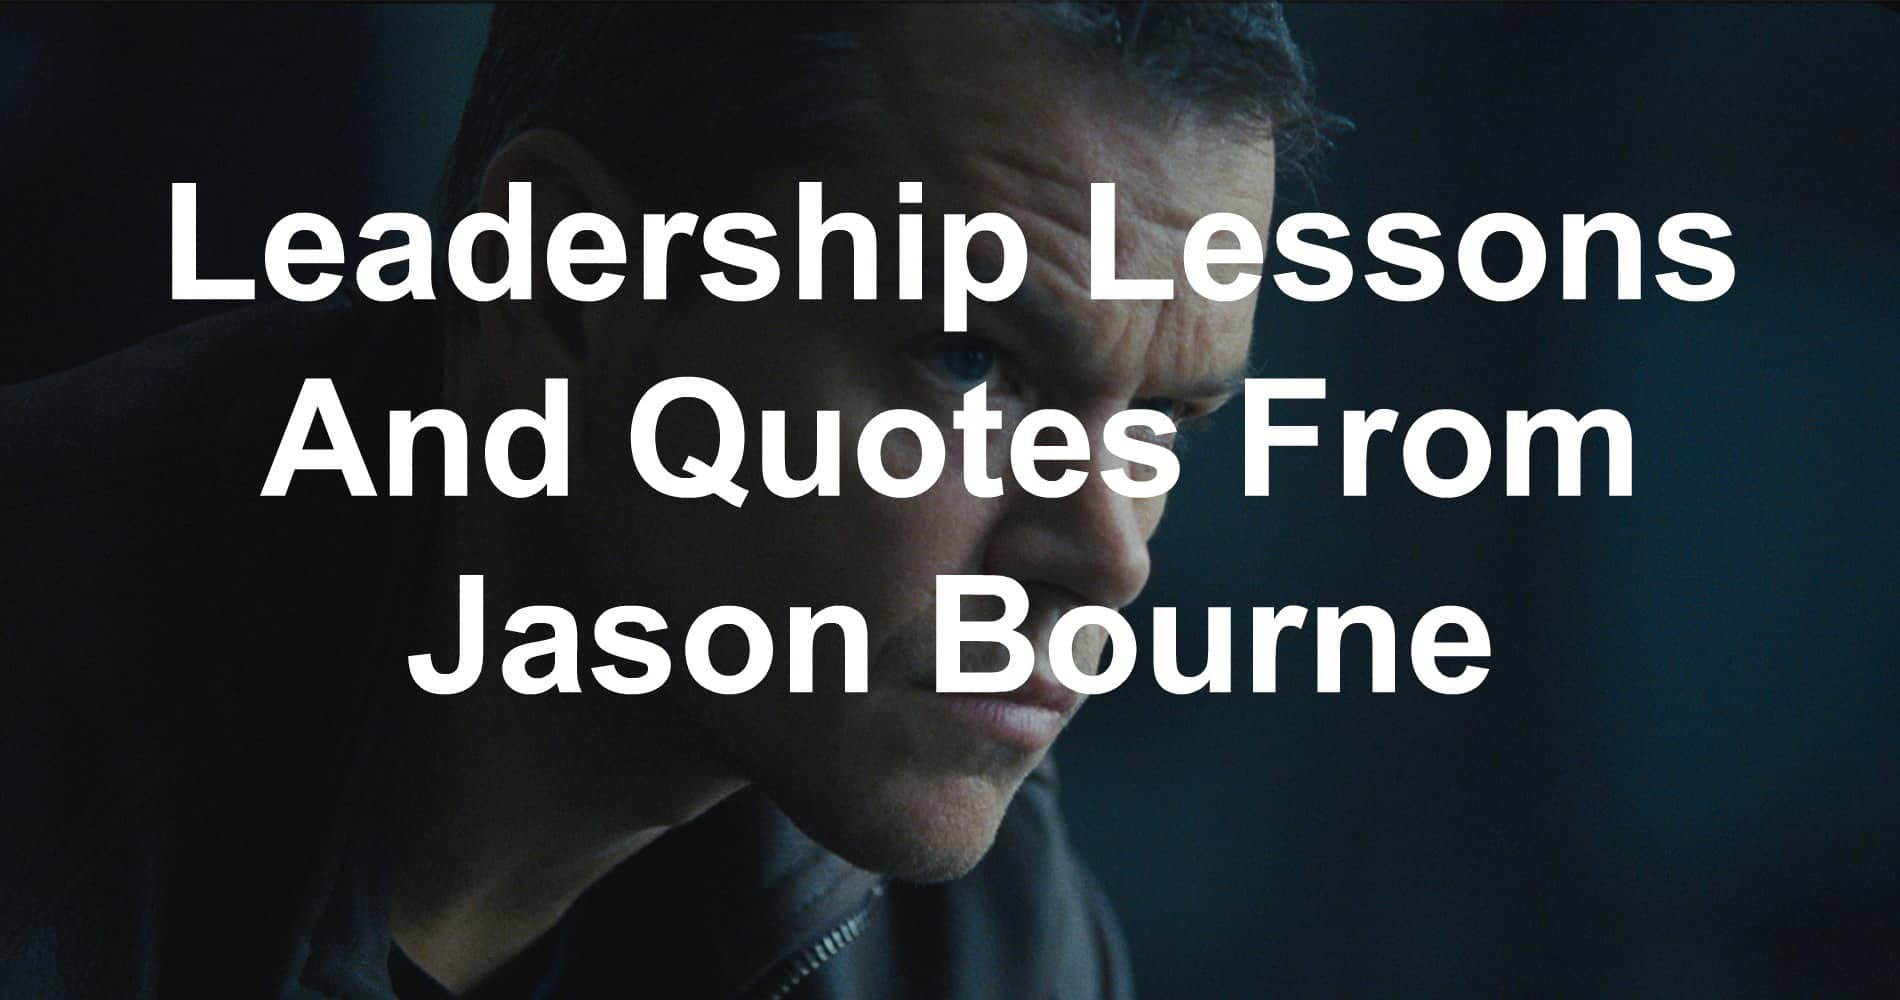 Quotes and leadership lessons from Jason Bourne